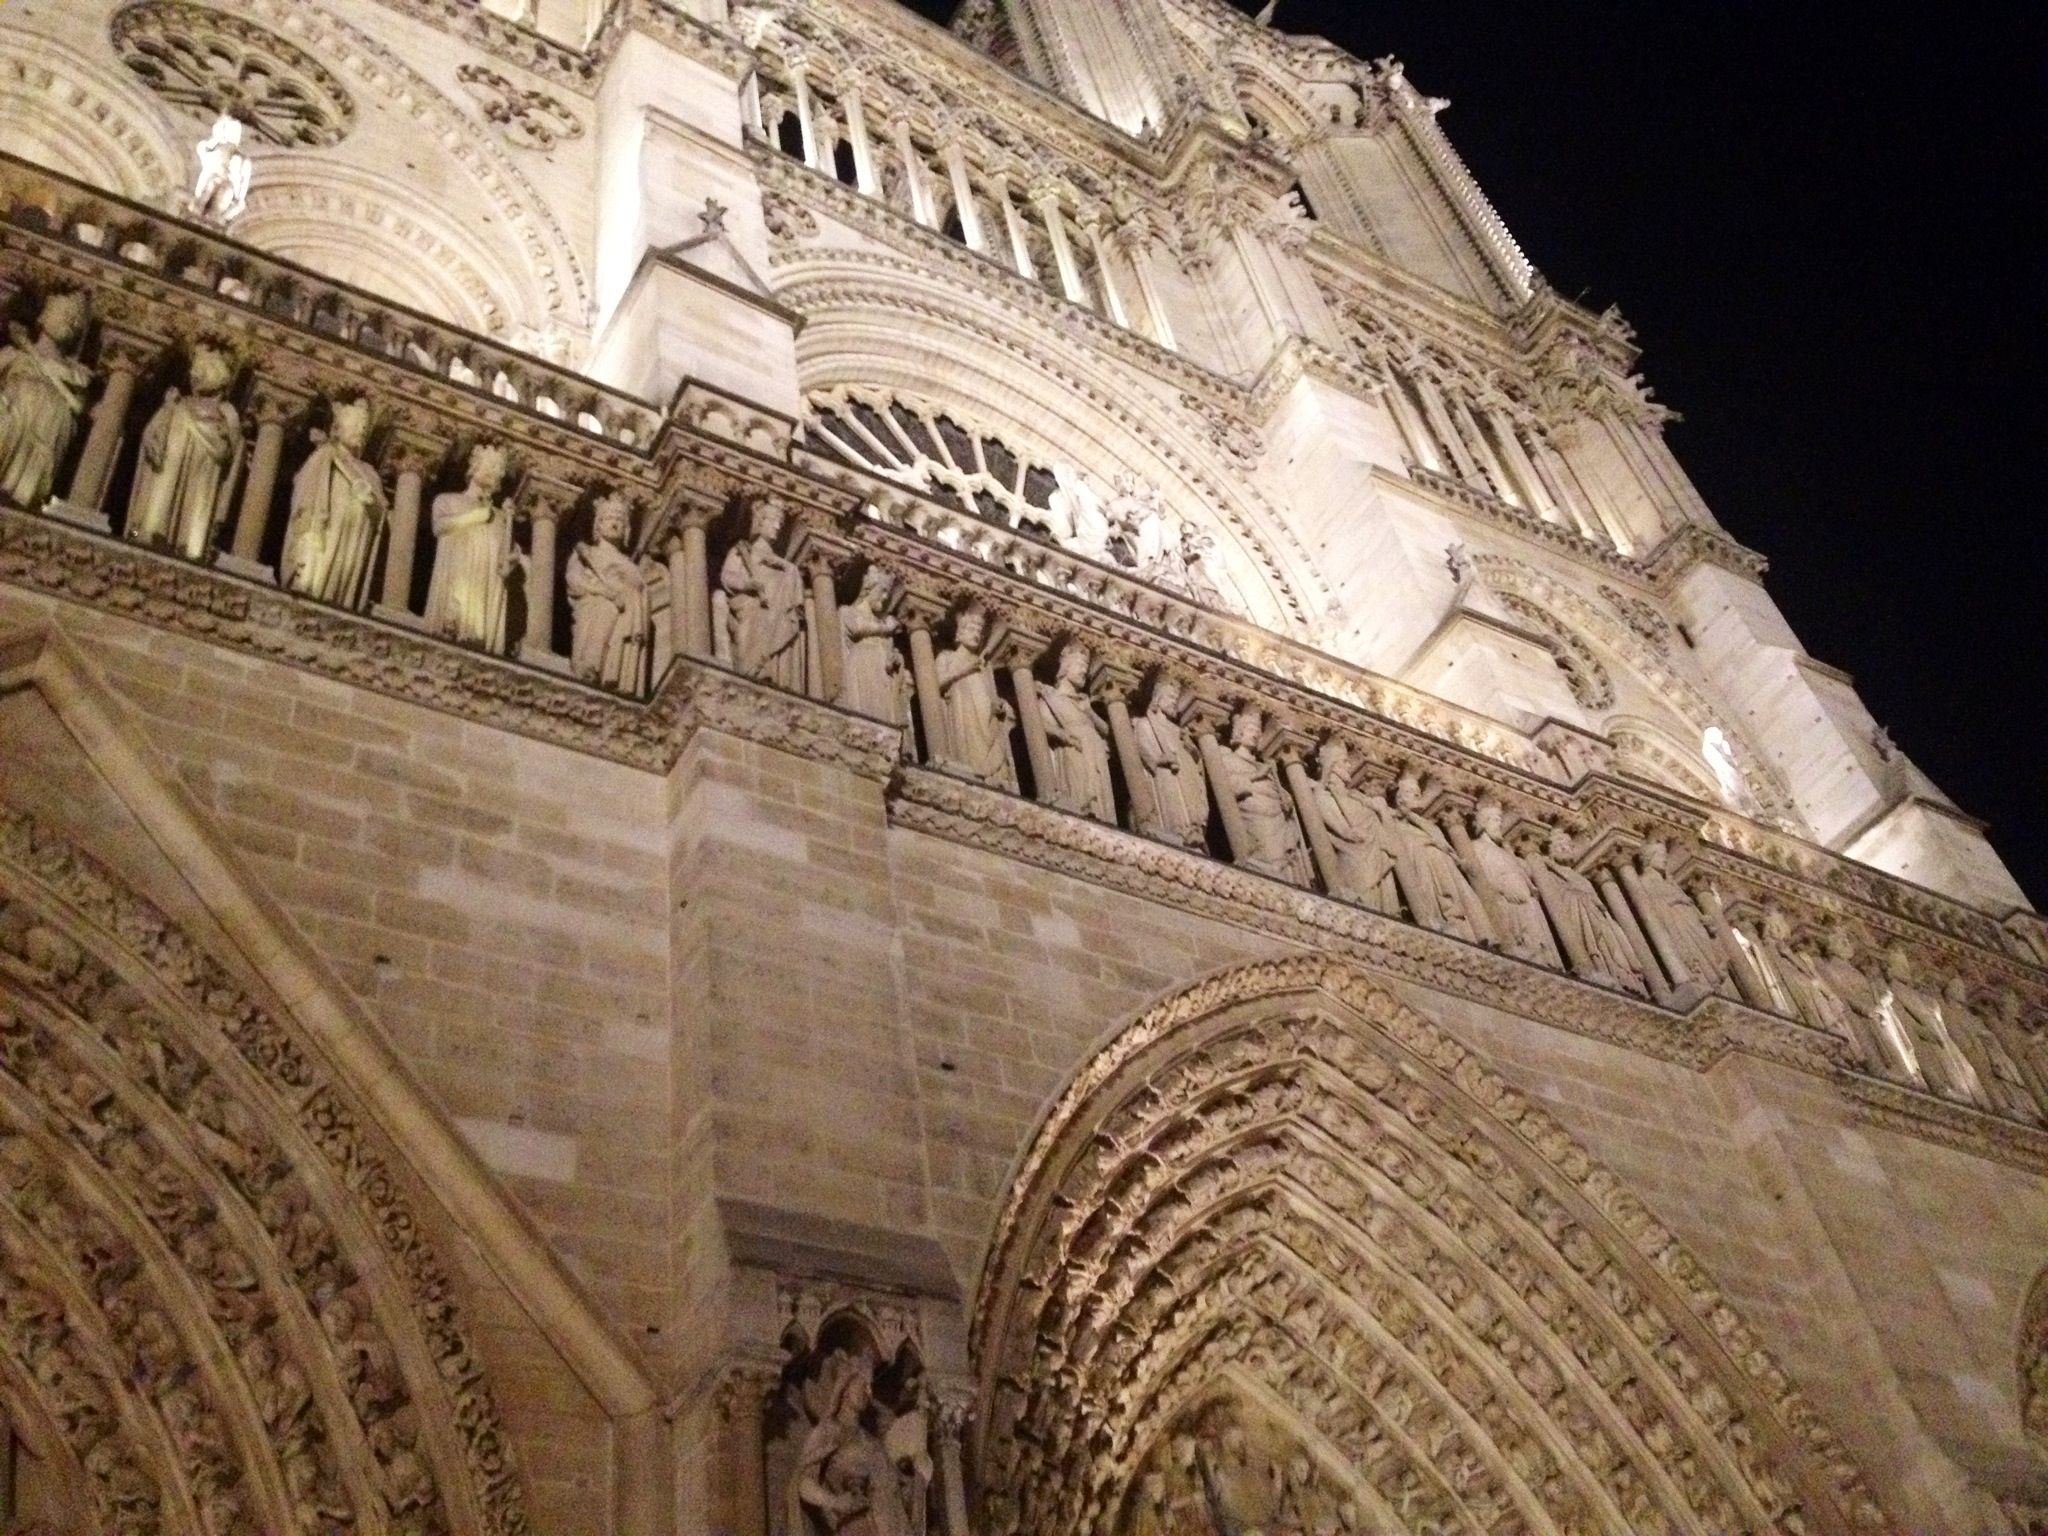 Notre Dame at night by Leah Marie Brown